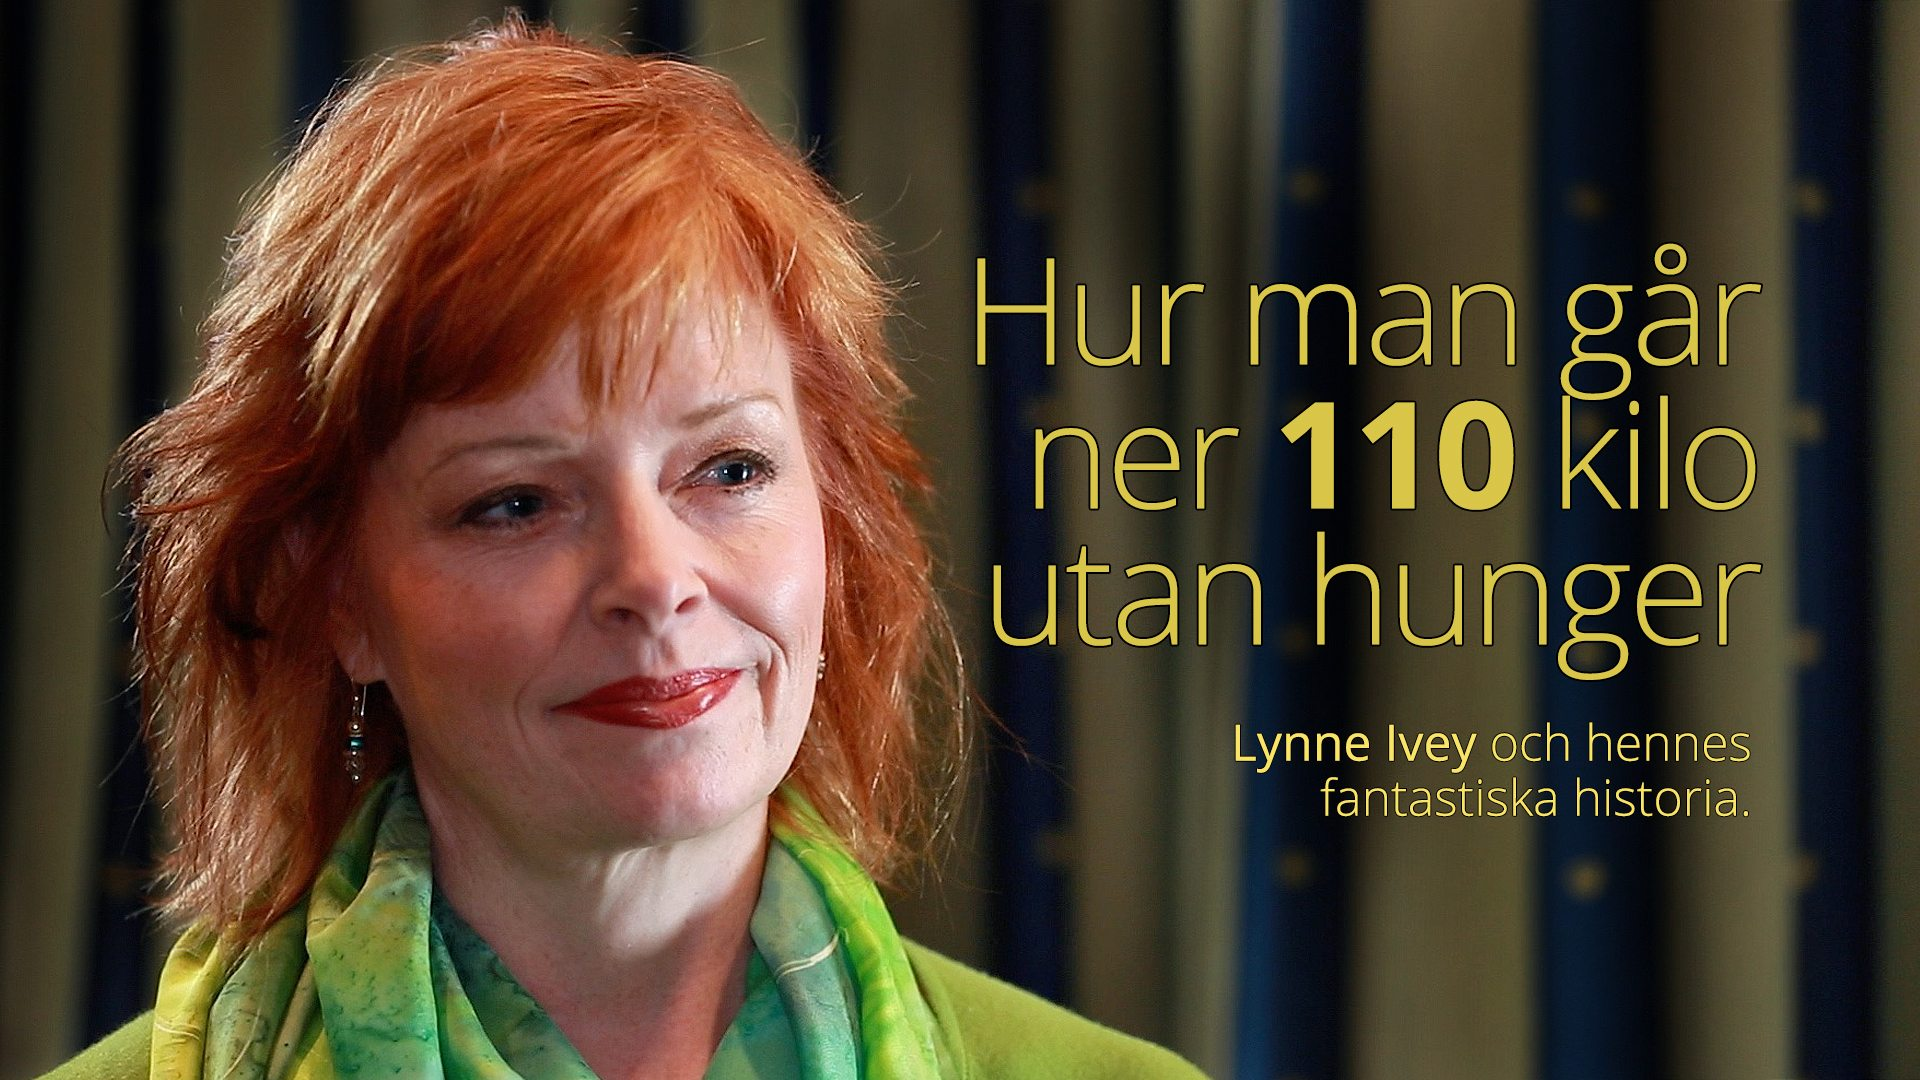 Lynne Daniel Ivey - Success story (1080p)